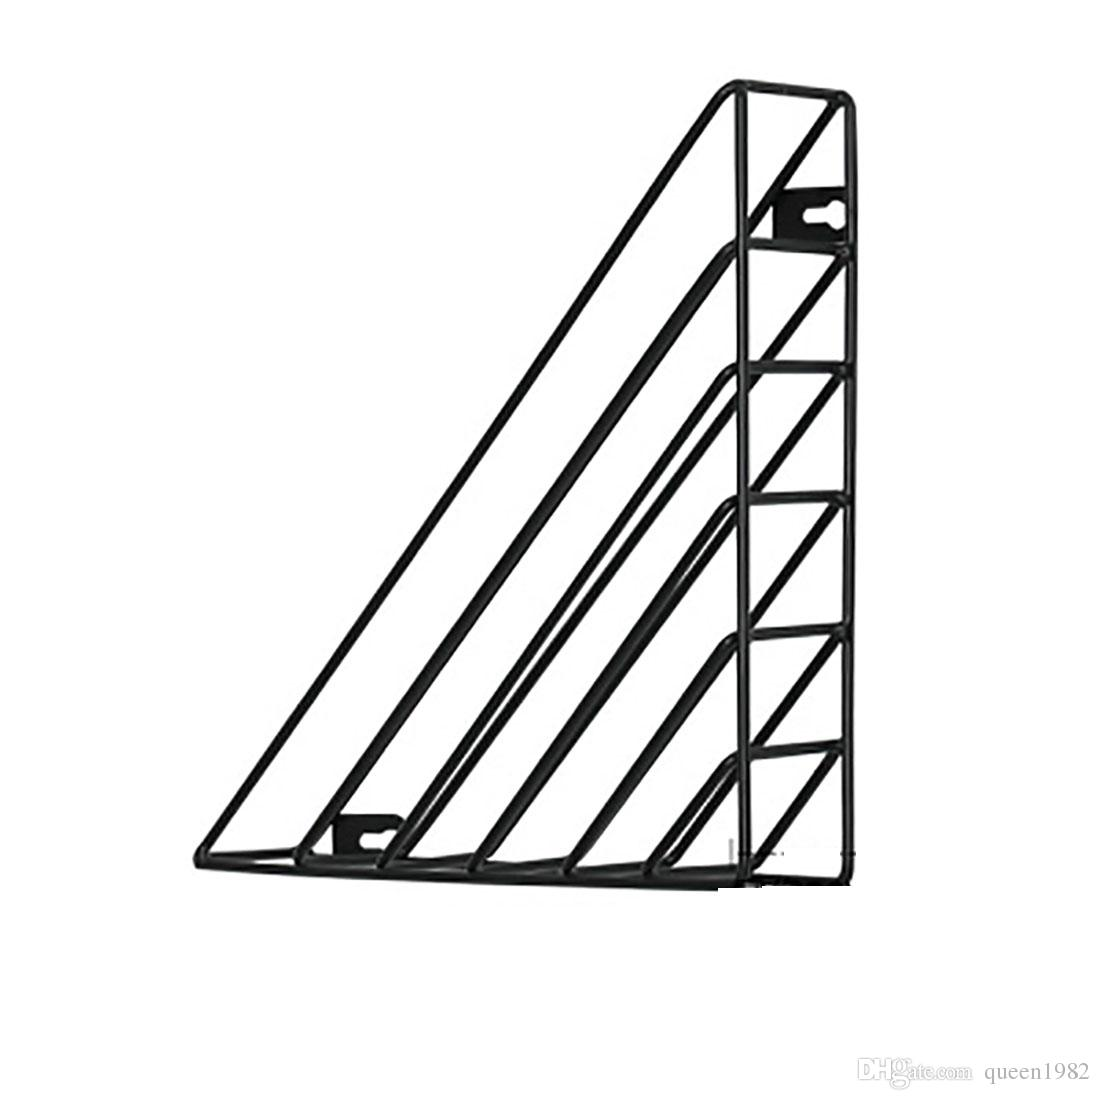 2019 Triangle Wall Mounted Nursery Deco Kids Book Shelves Magazine Racks Metal For Living Room And Bath Room From Queen1982 18 1 Dhgate Com